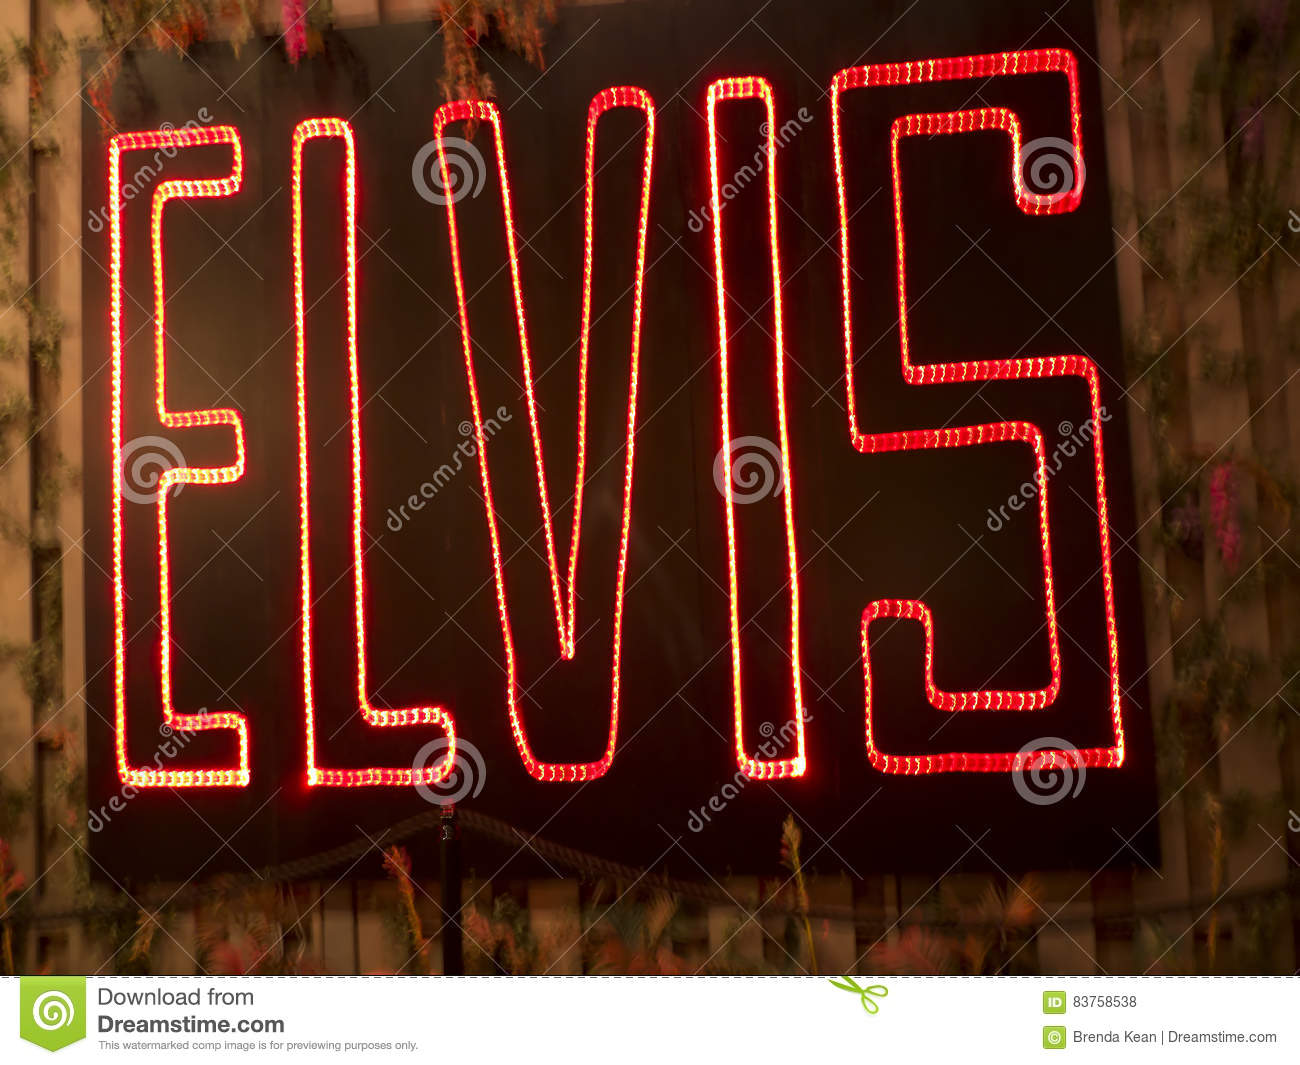 Graceland is the home of Singer Elvis Presley in style of an antebellum mansion and a magnet for music fans